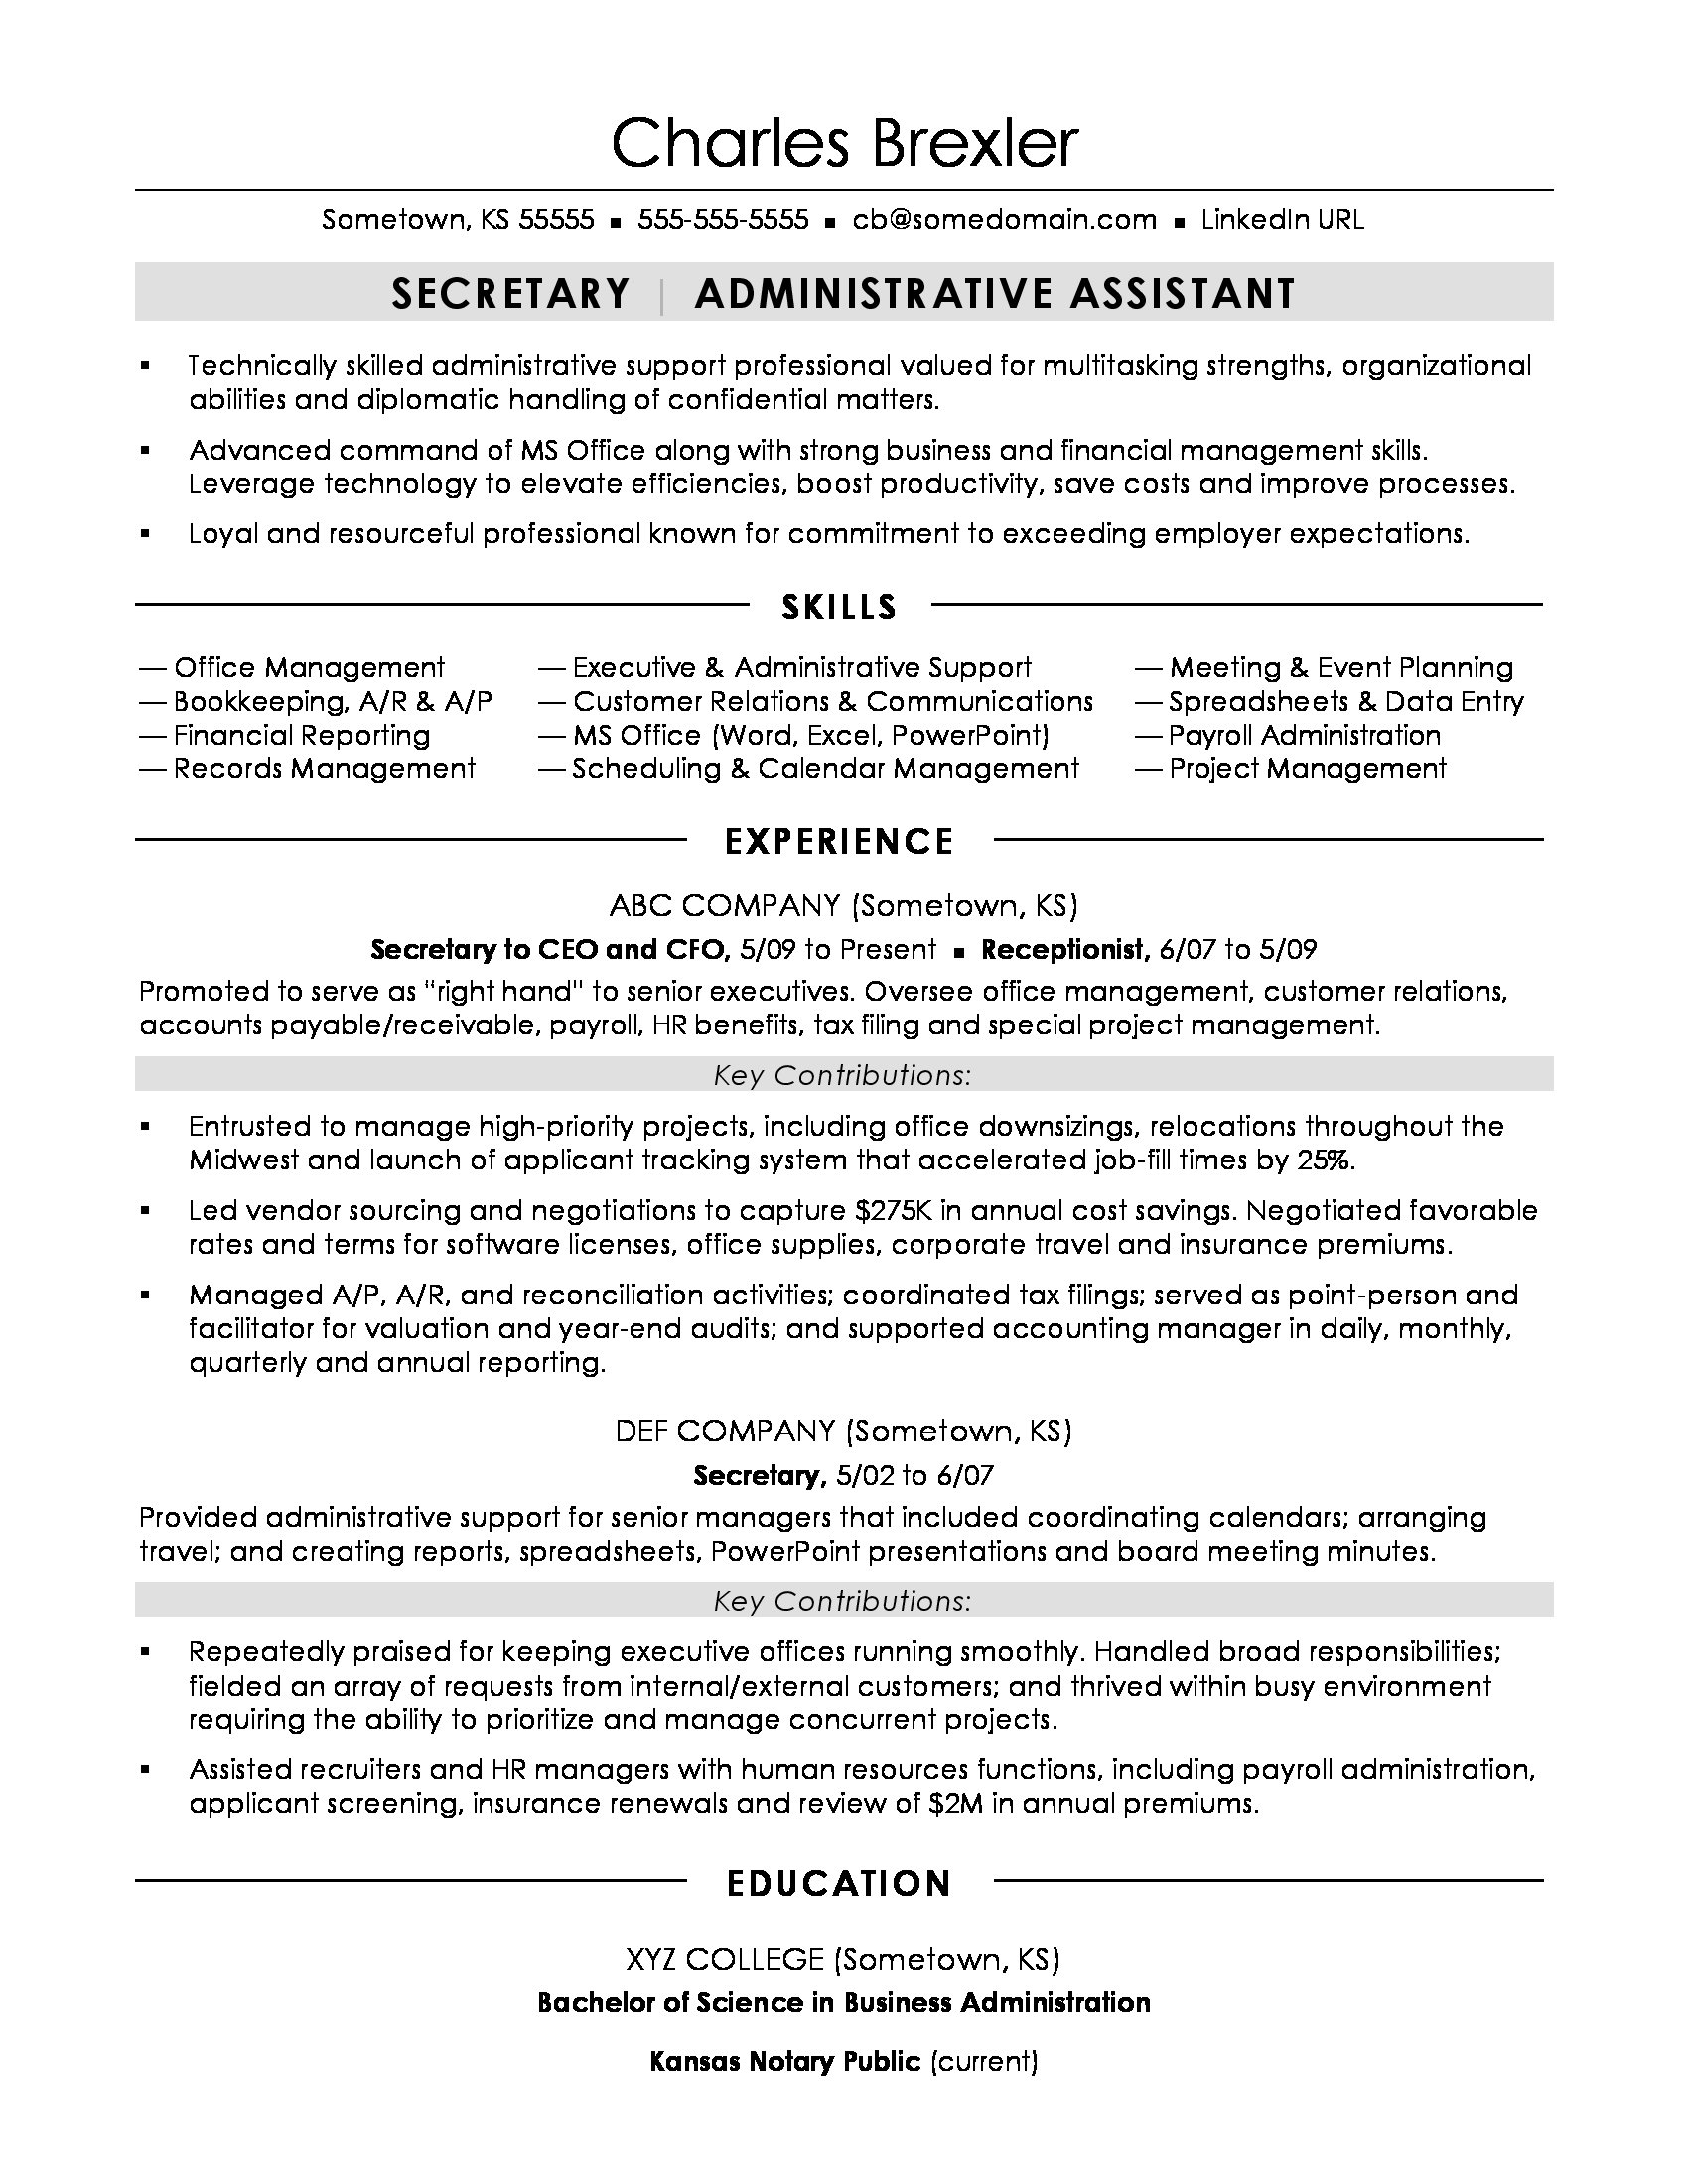 Secretary Resume Sample  Secretary Resume Objective